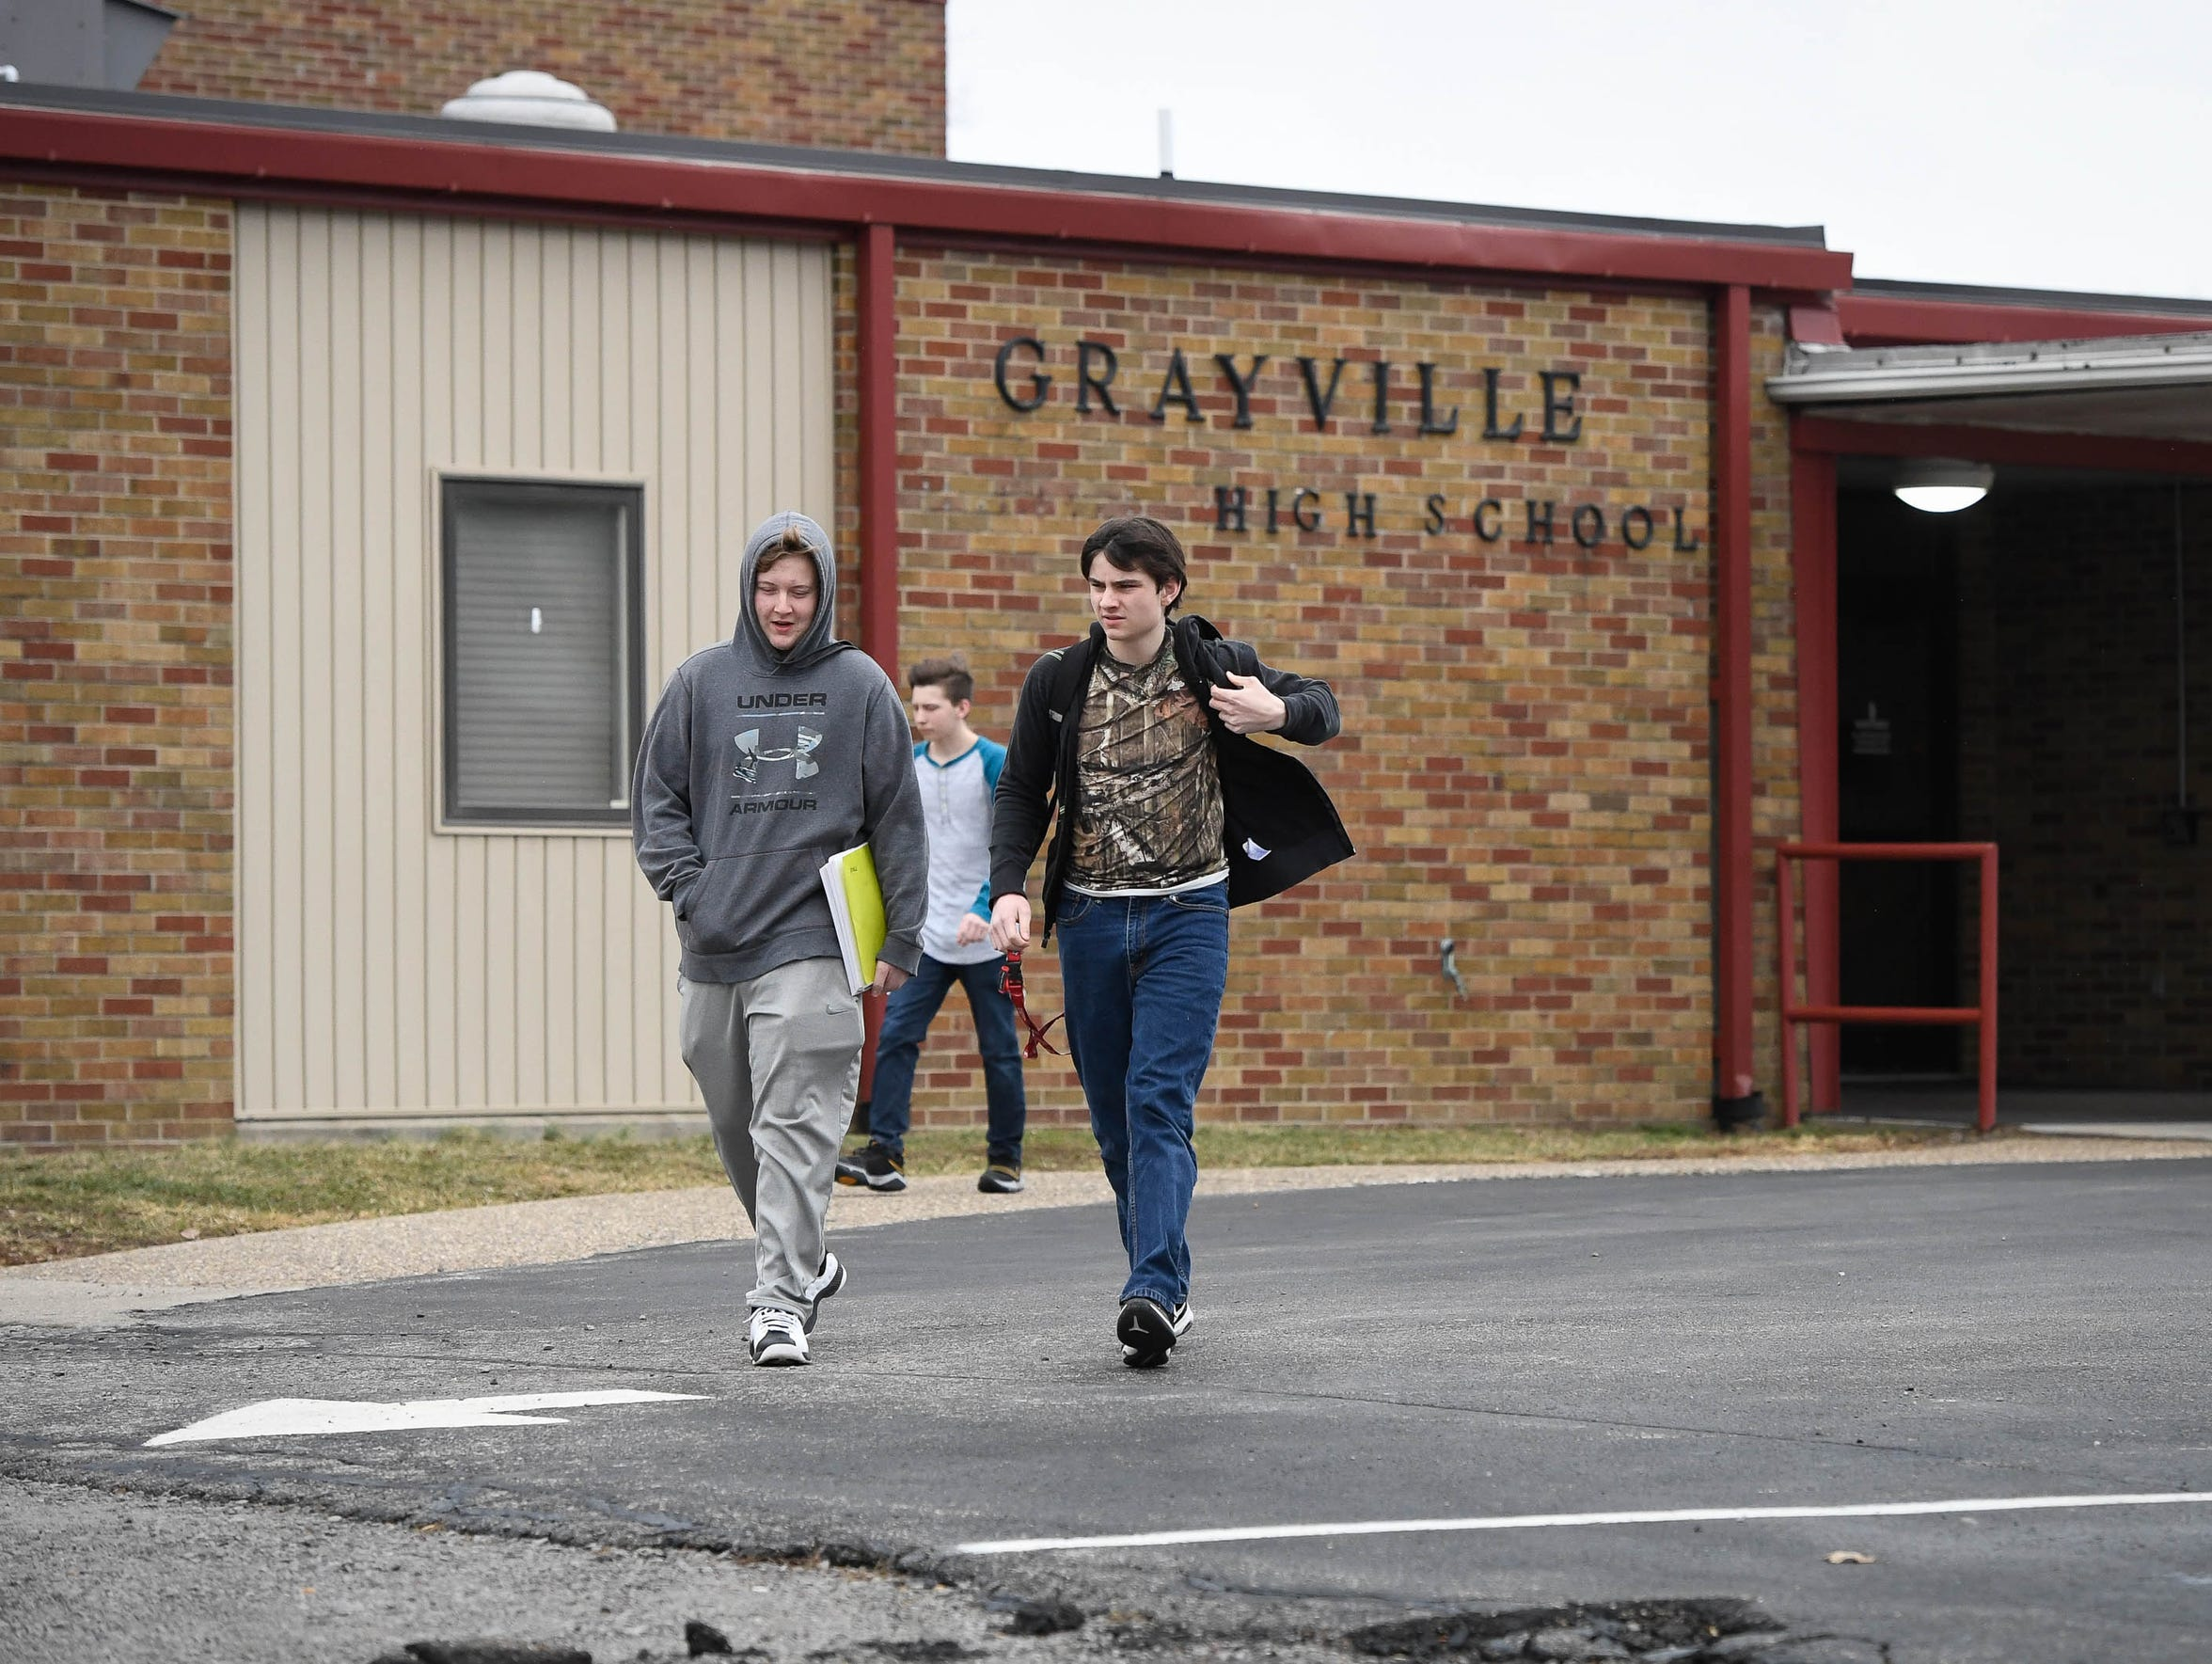 Class lets out at Grayville High School Tuesday.  Serving